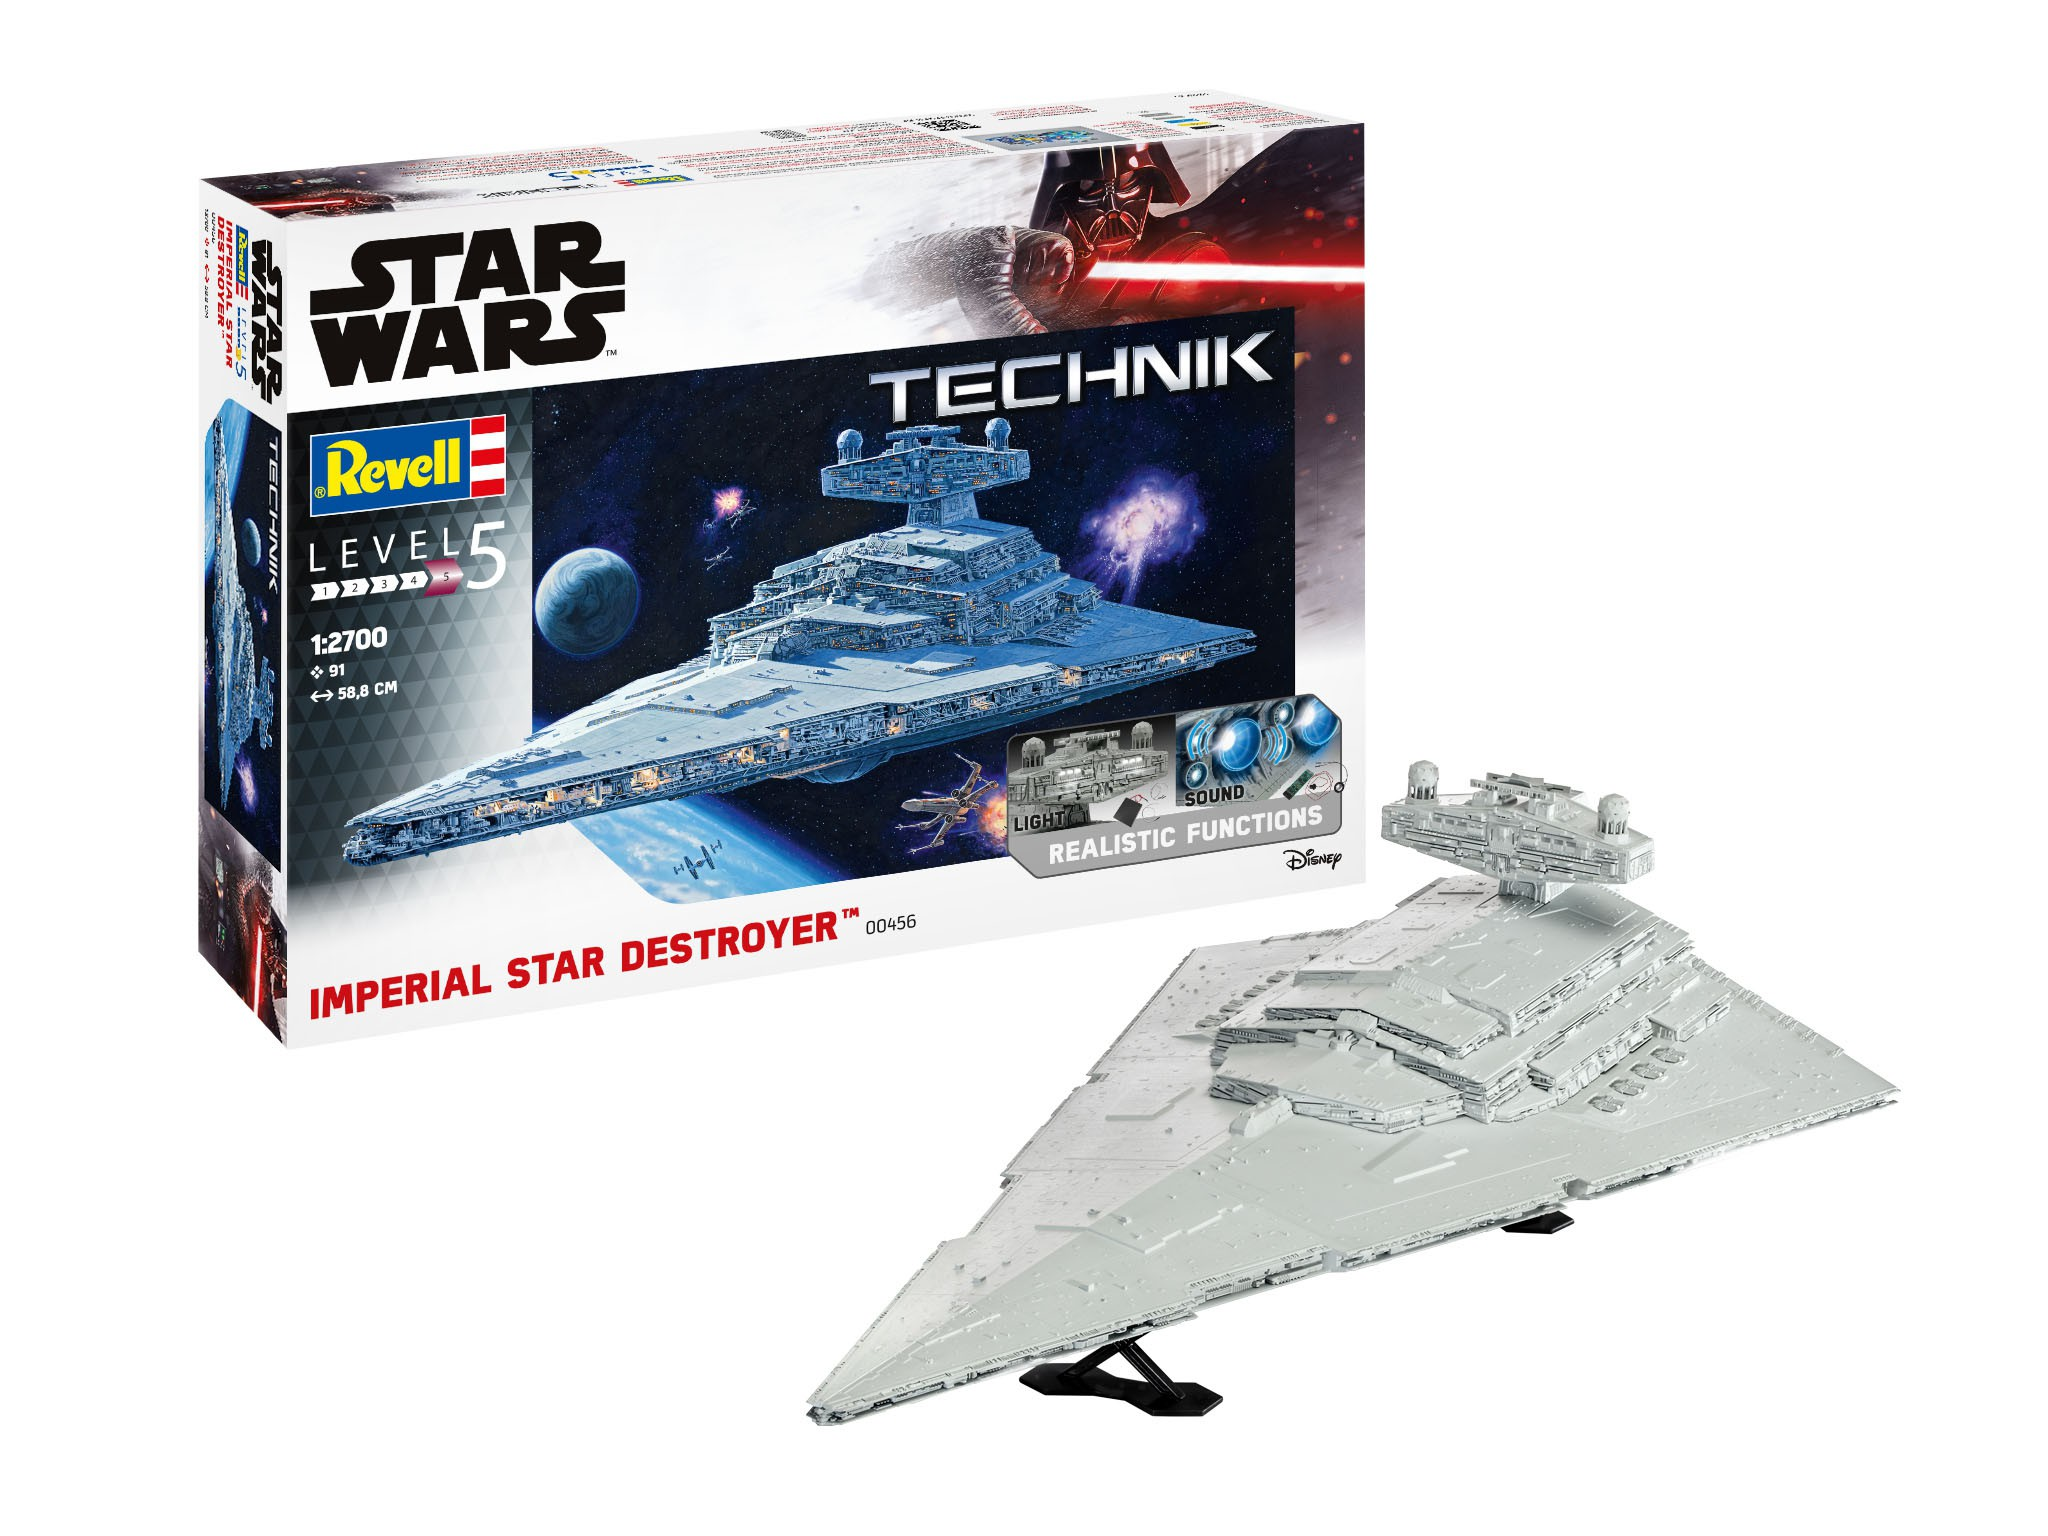 Imperial Star Destroyer - Technik